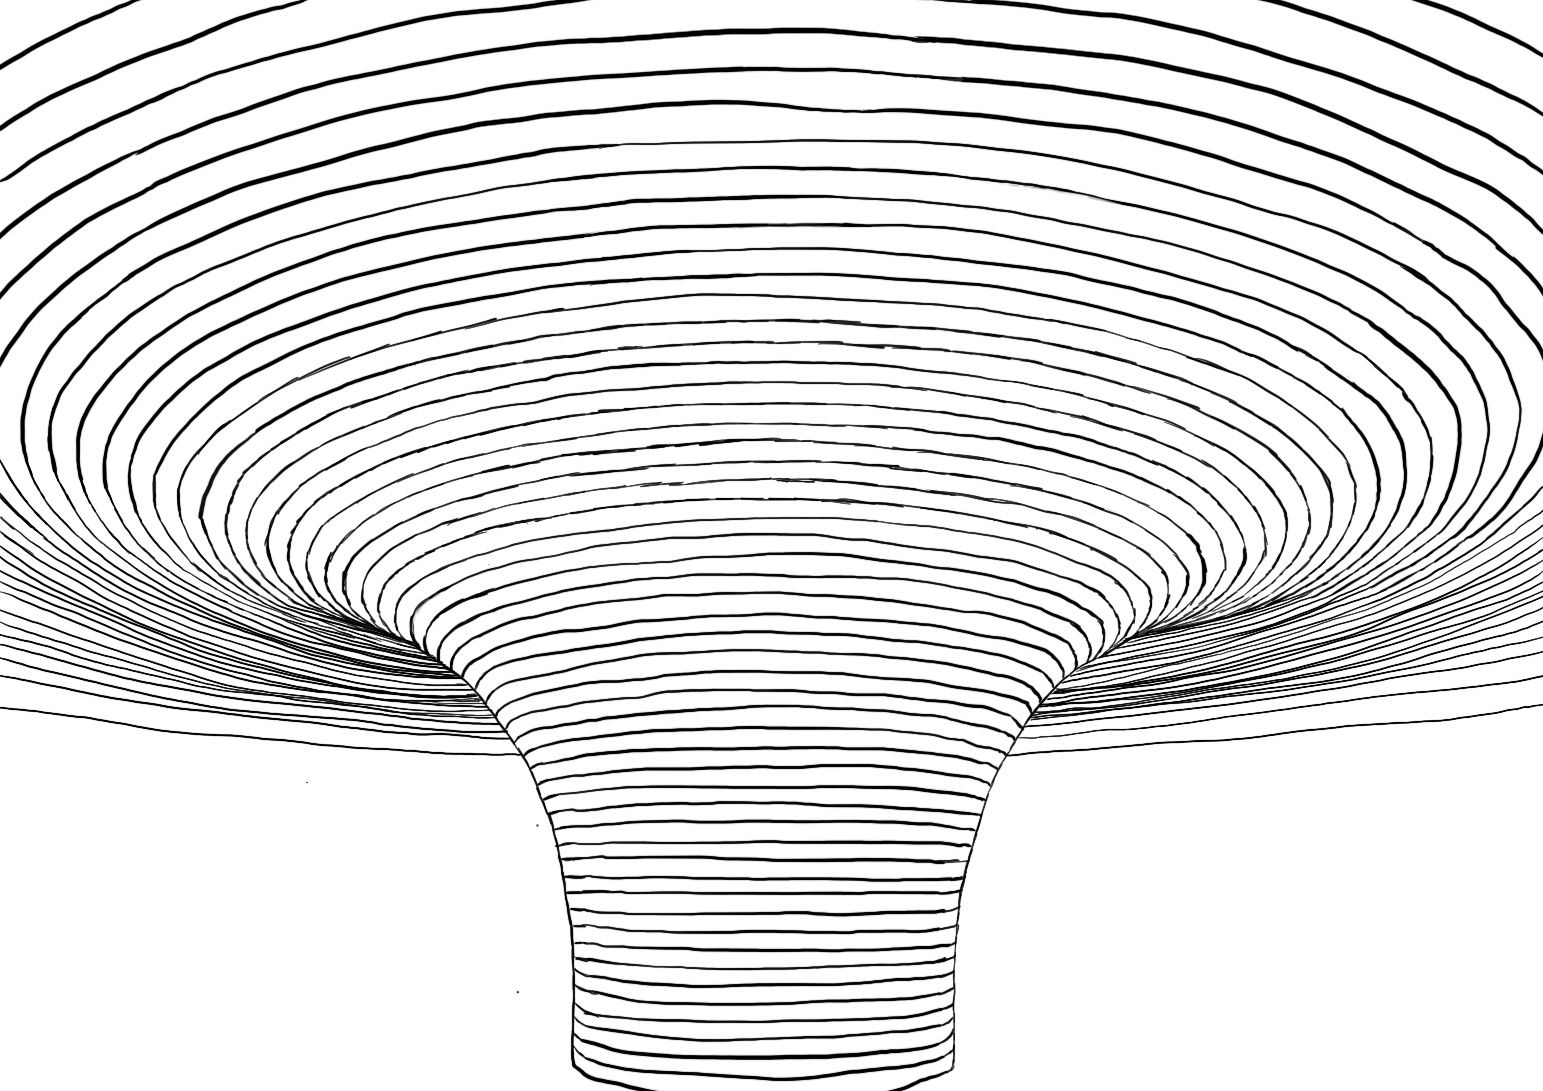 Vortex Ceiling, Apple Store, Bangkok